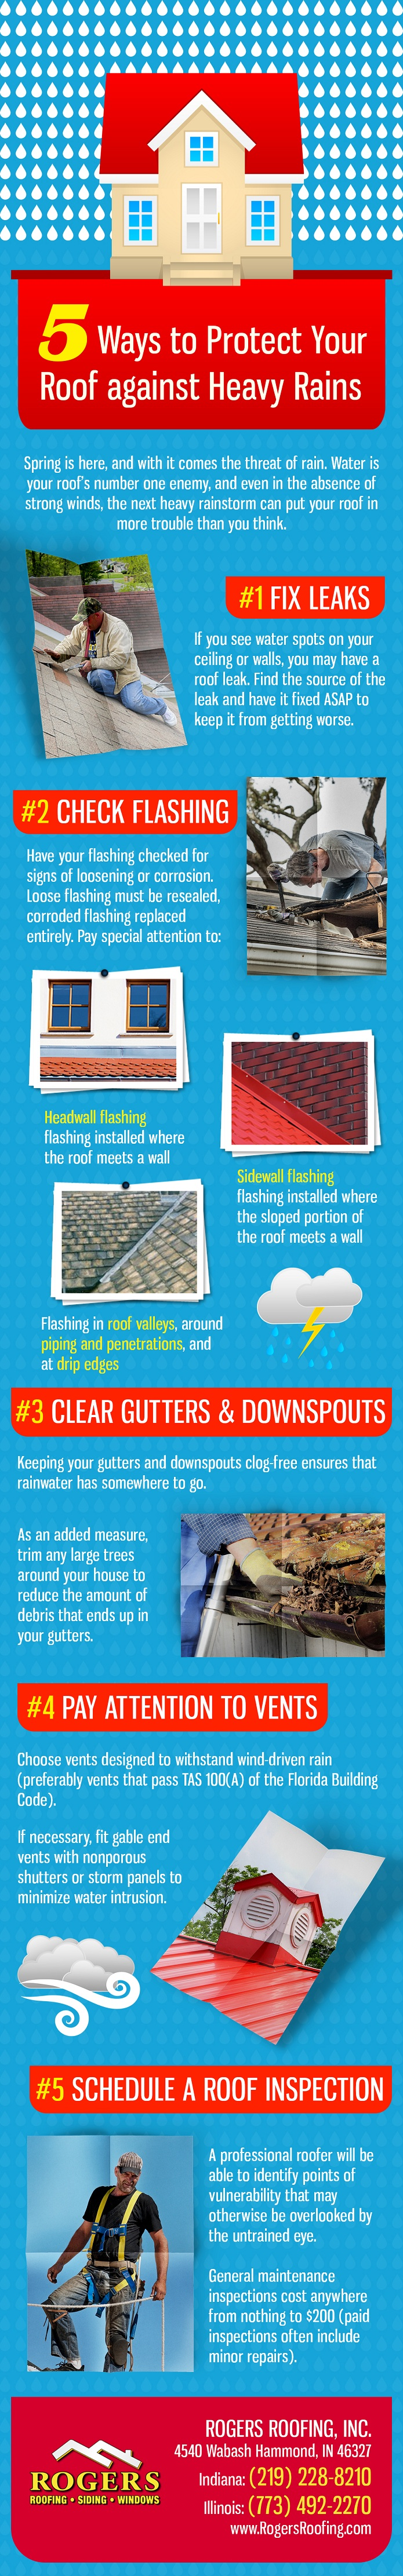 5 Ways to Protect Your Roof against Heavy Rains